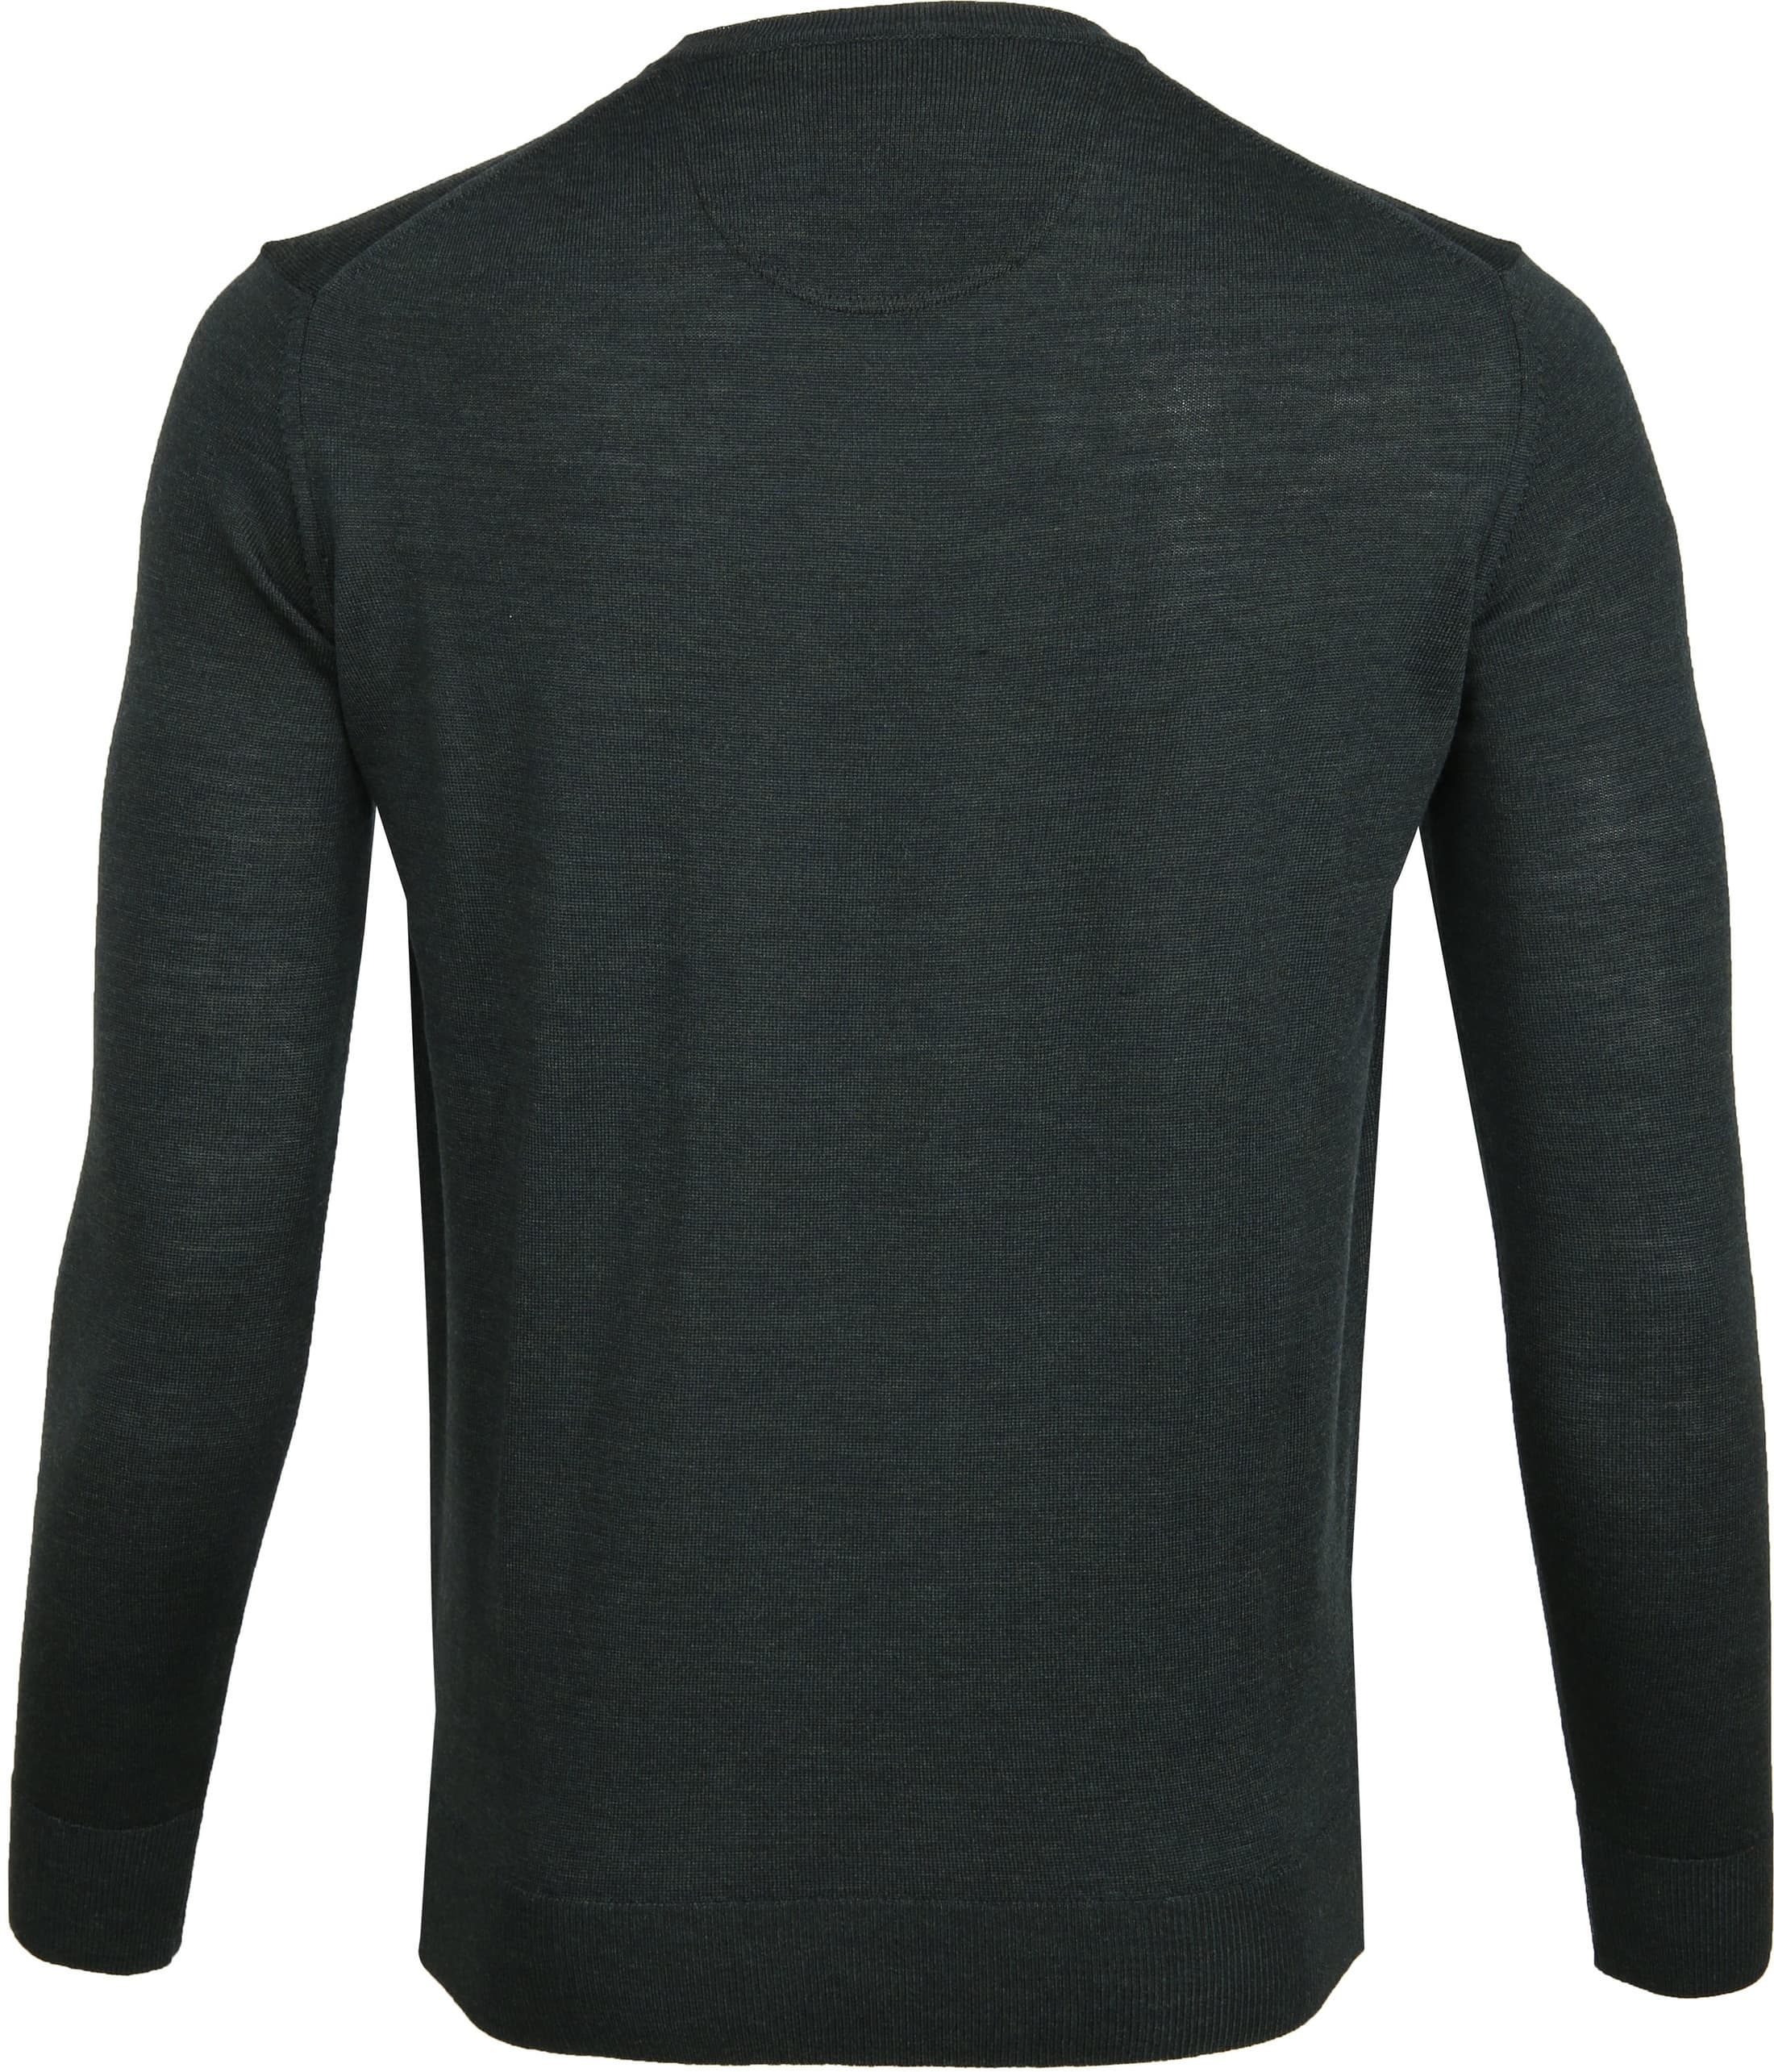 Suitable Merino Pullover R-Neck Dark Green foto 3